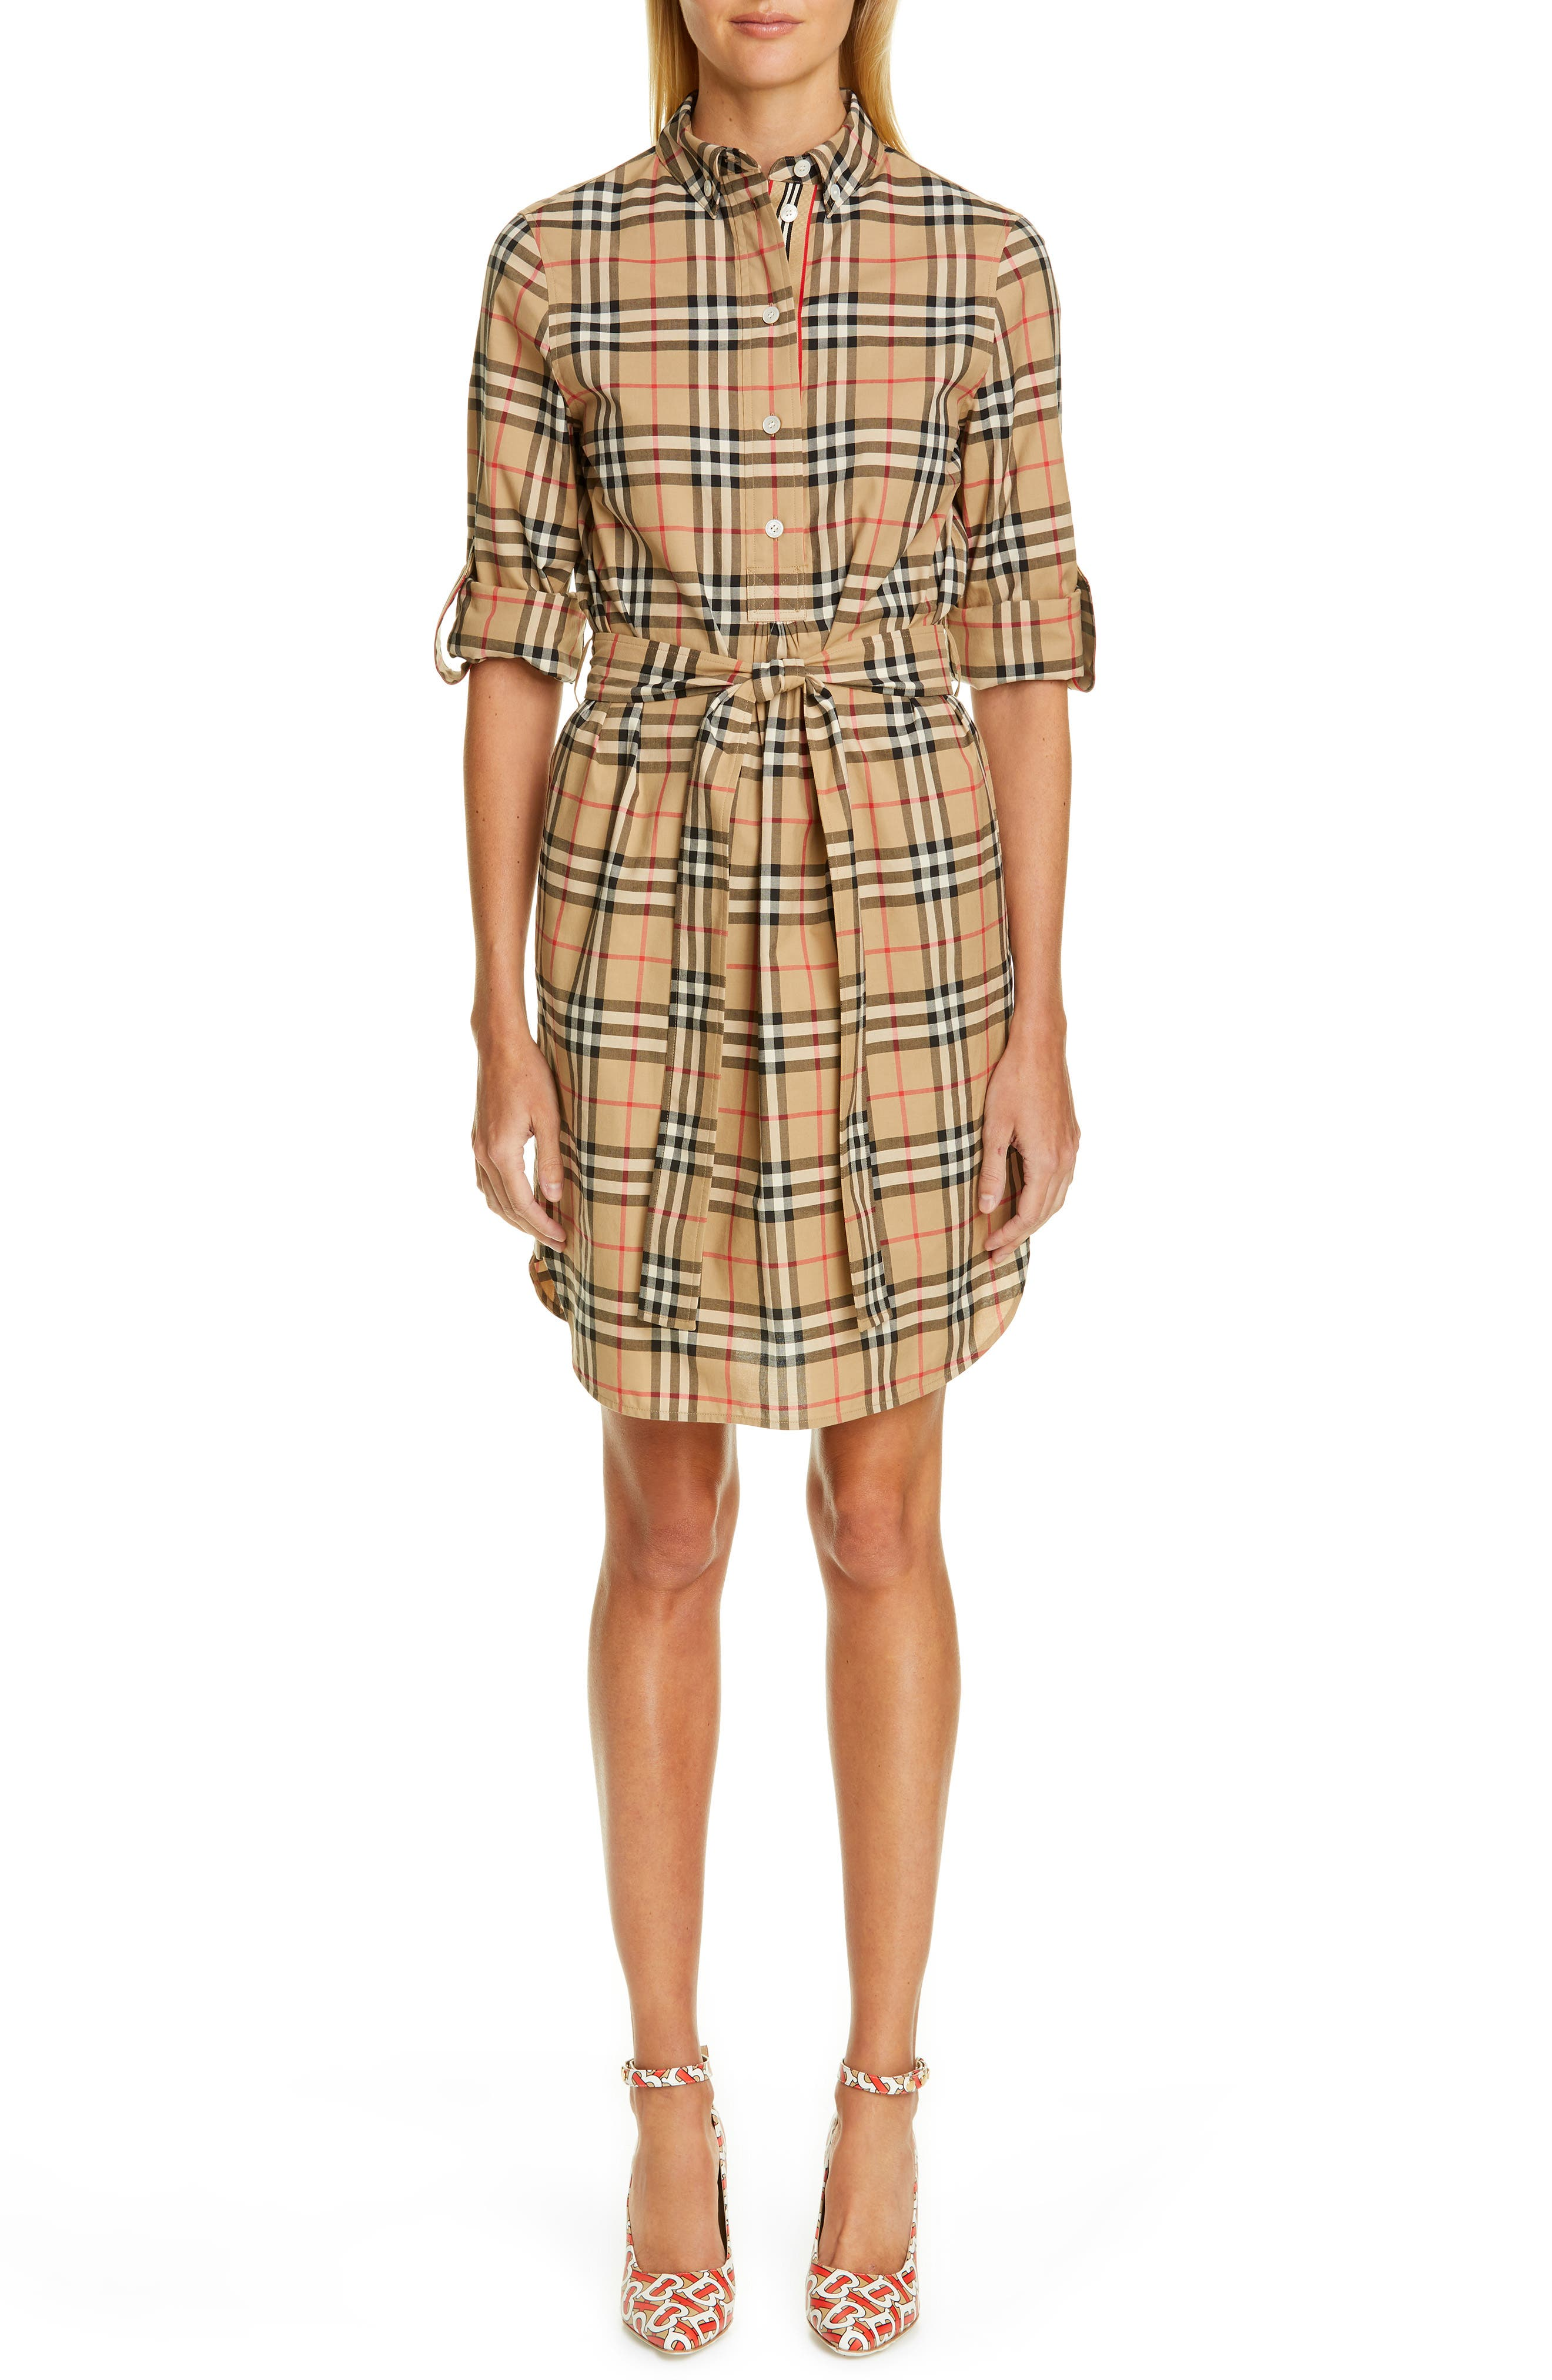 BURBERRY, Giovanna Archive Check Shirtdress, Main thumbnail 1, color, ARCHIVE BEIGE IP CHK